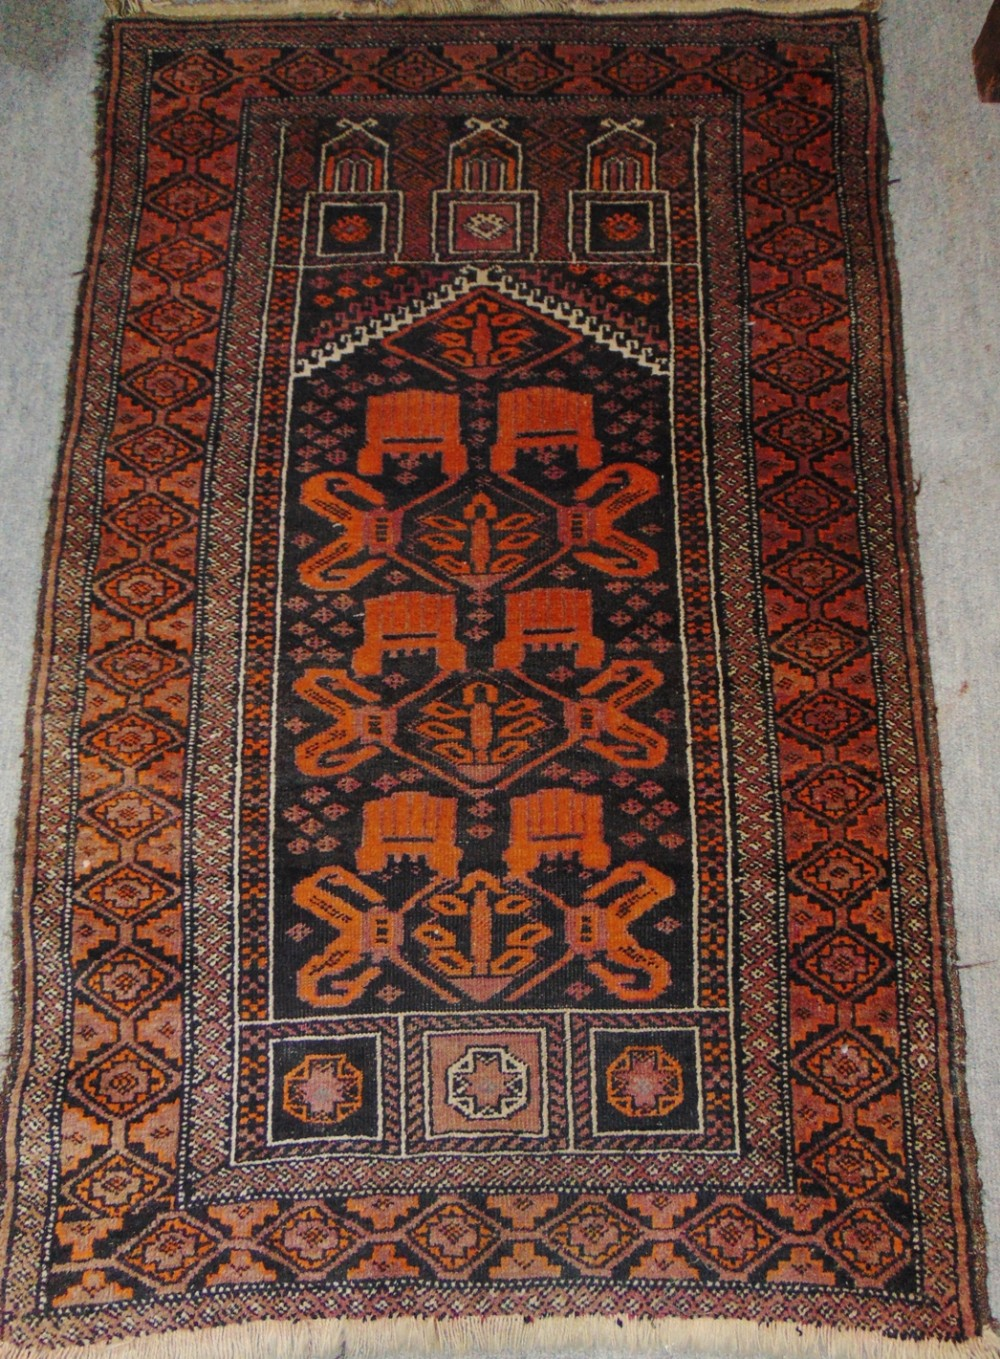 antique persian balouche prayer rug circa 1925